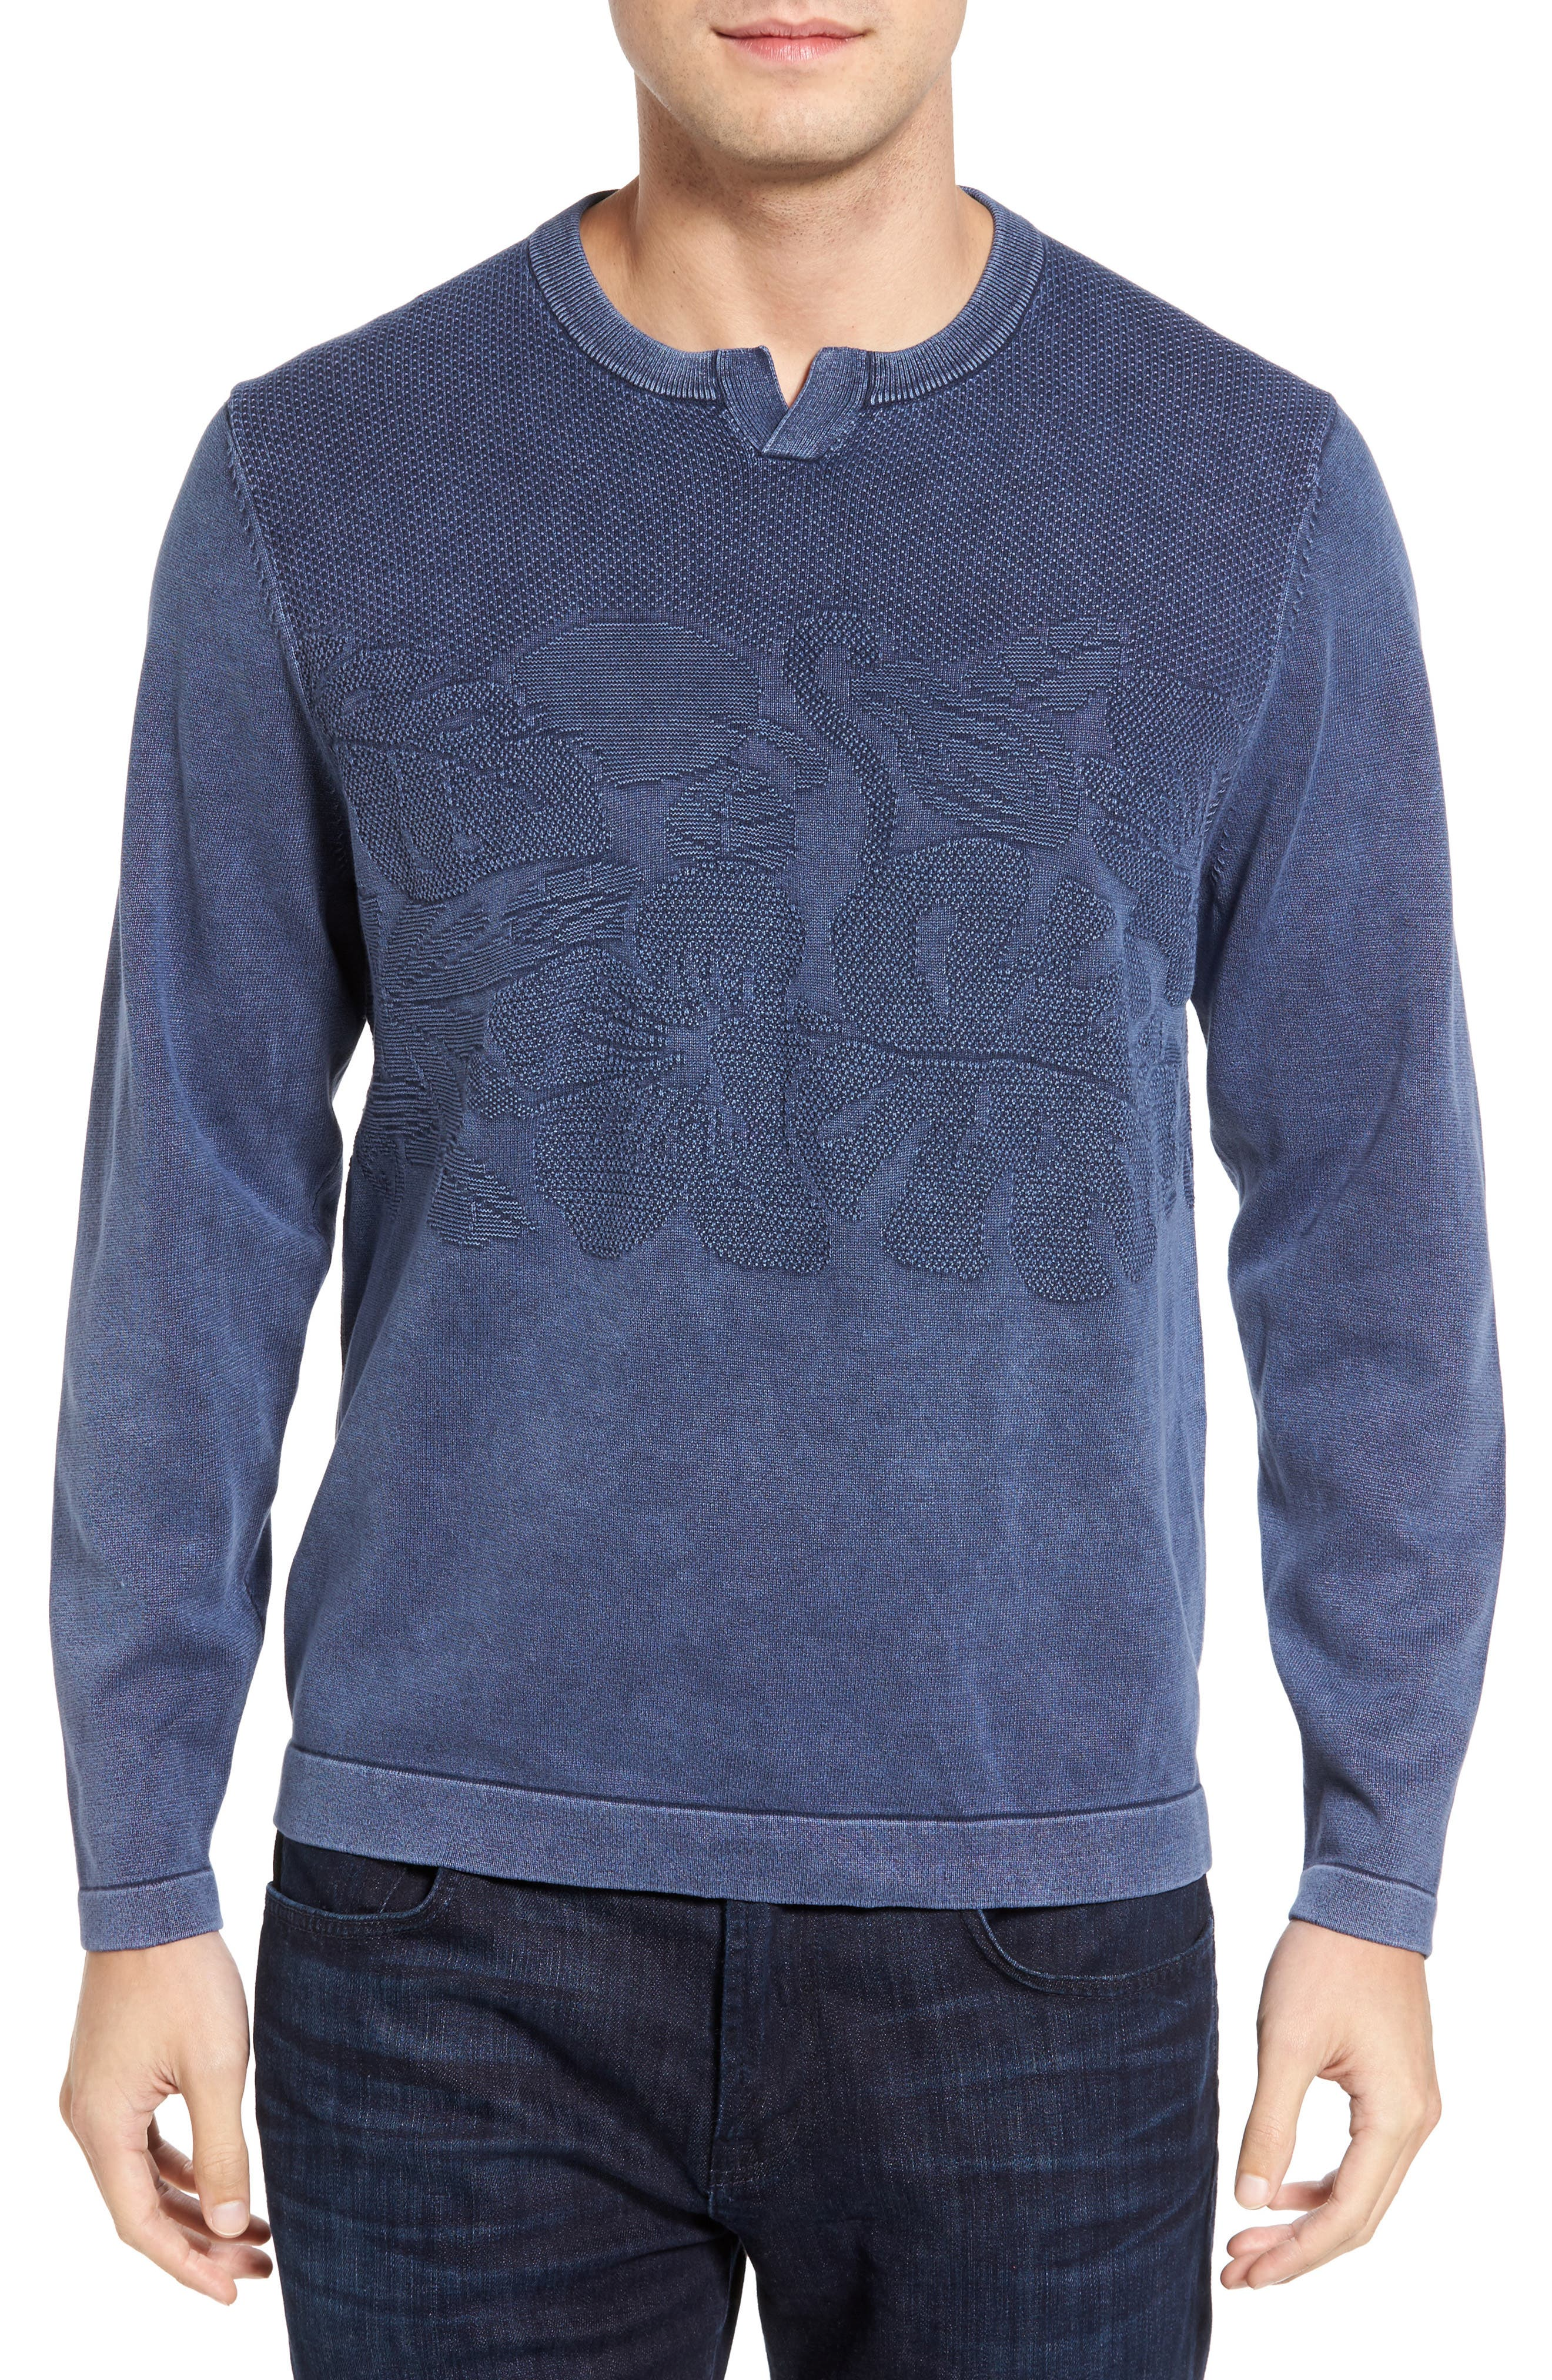 Main Image - Tommy Bahama Tropicruiser Abaco Pullover